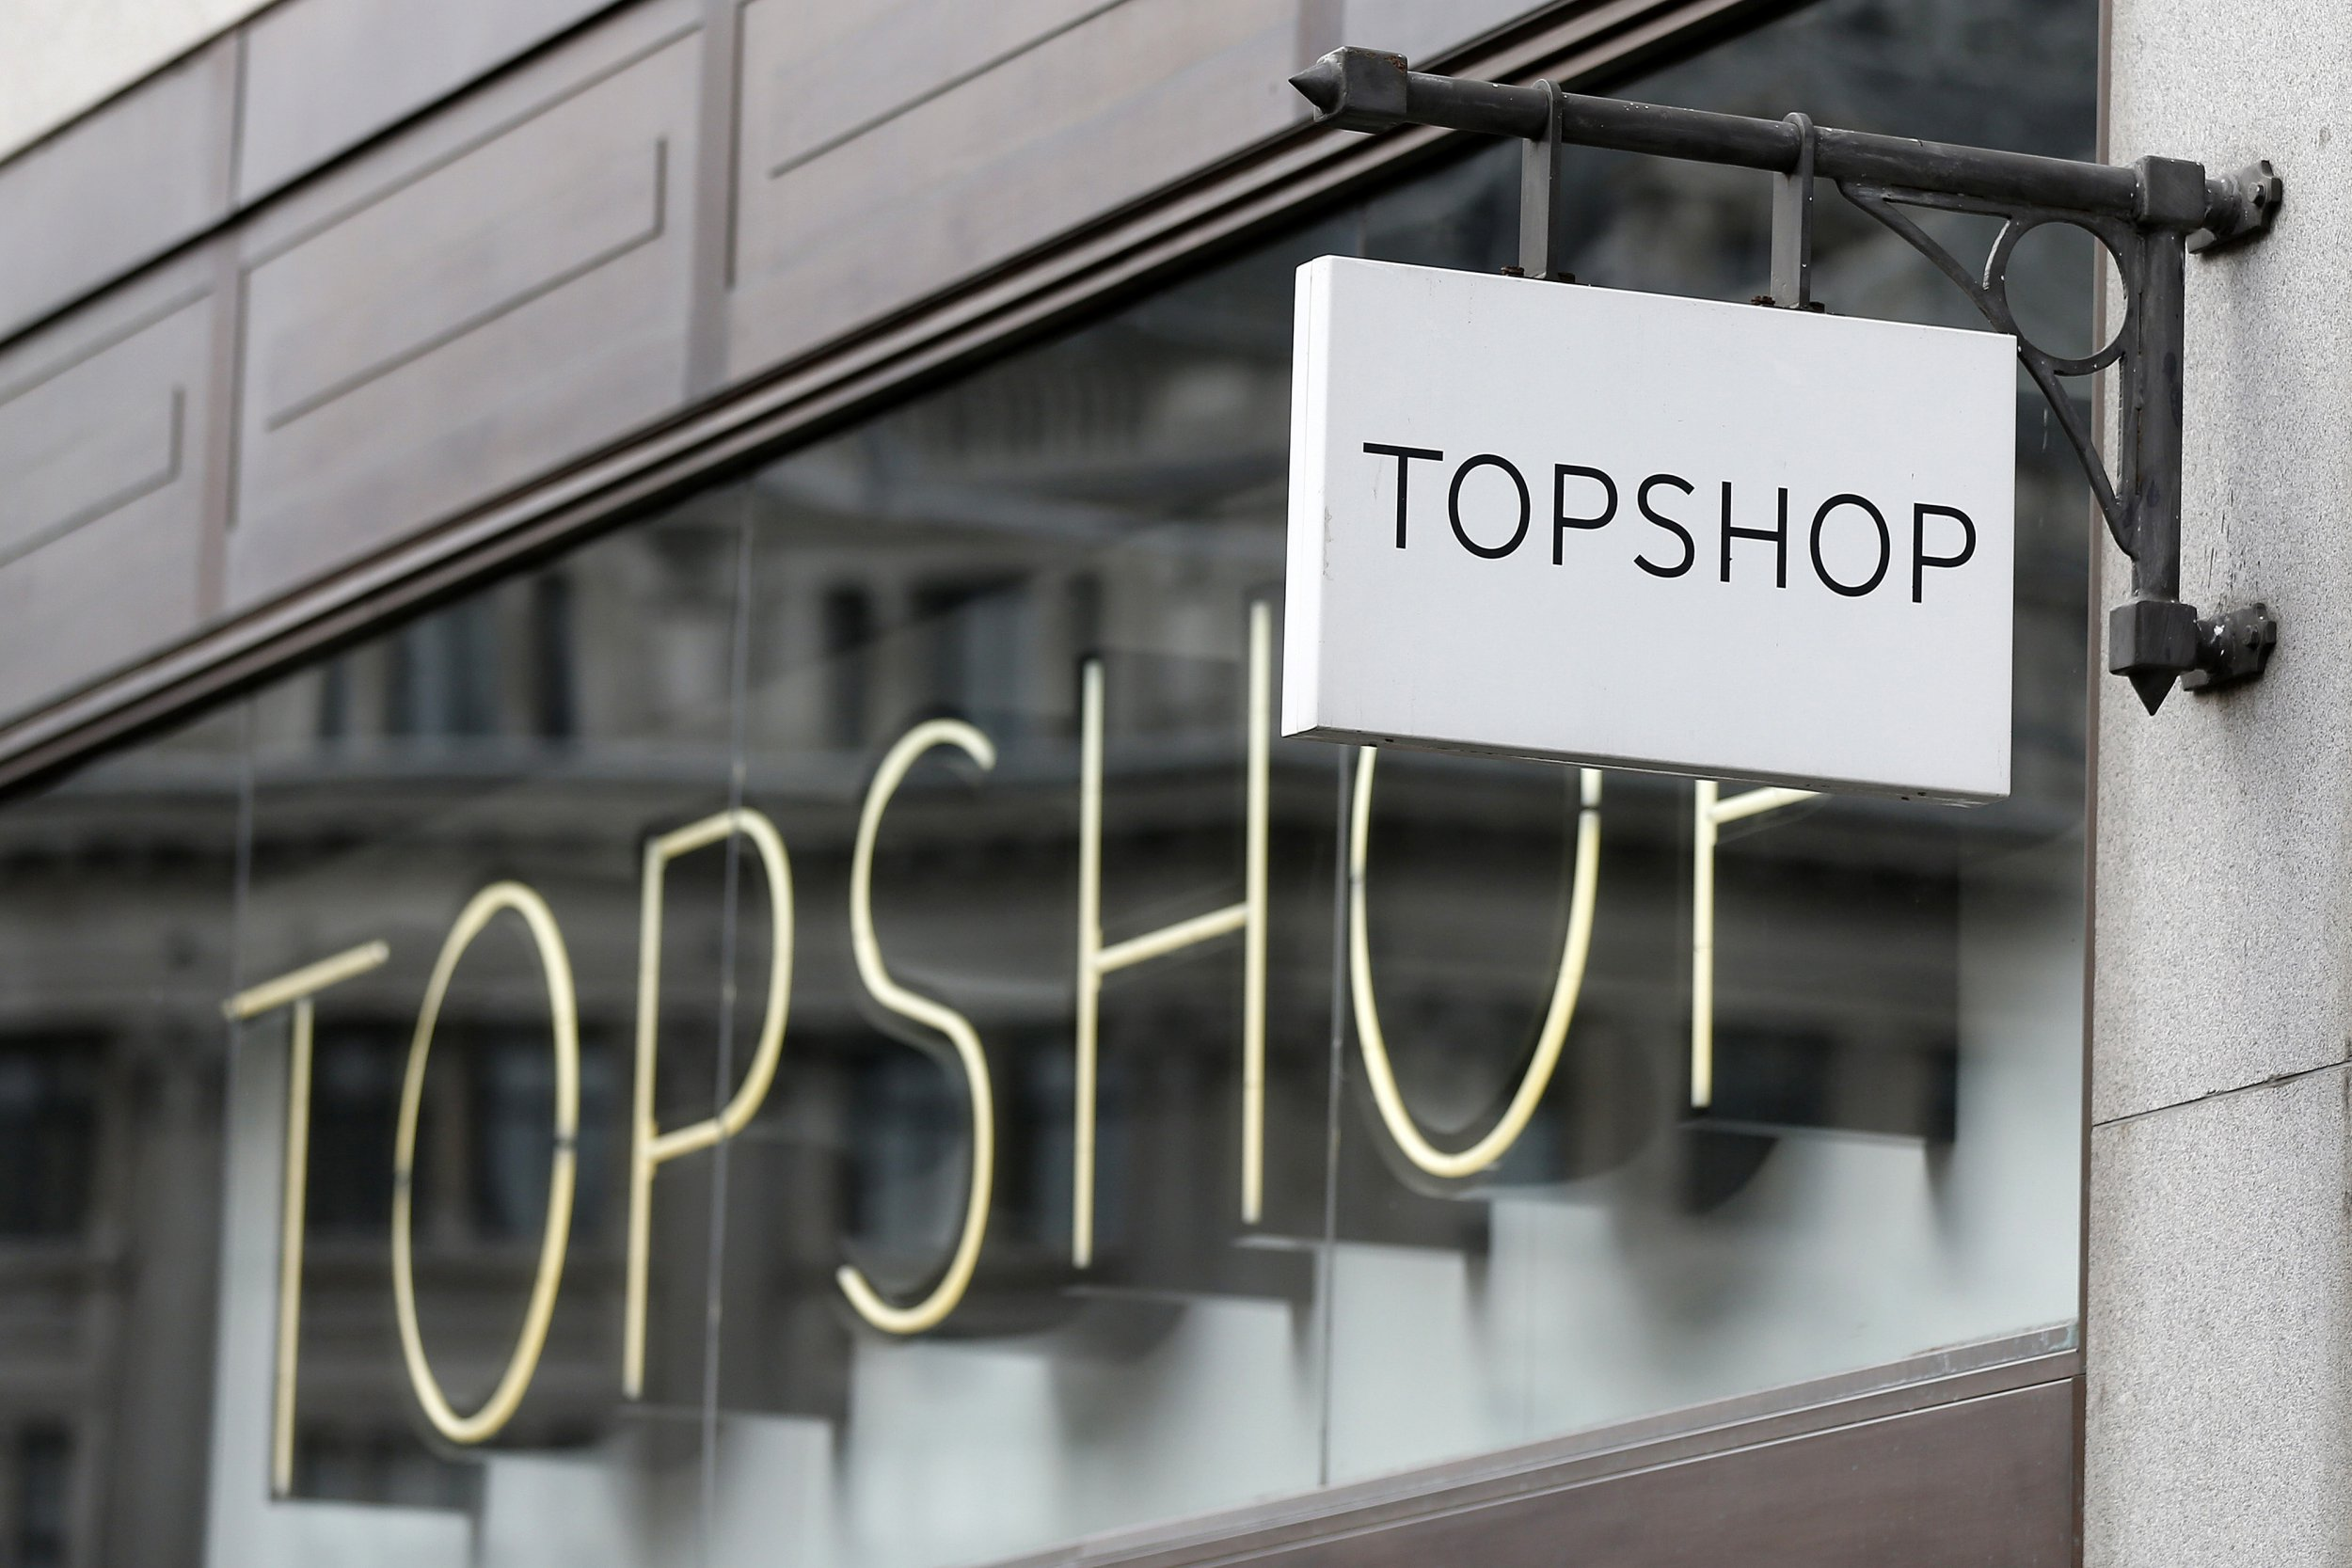 Major job loss fears after Topshop owner demands discount from suppliers